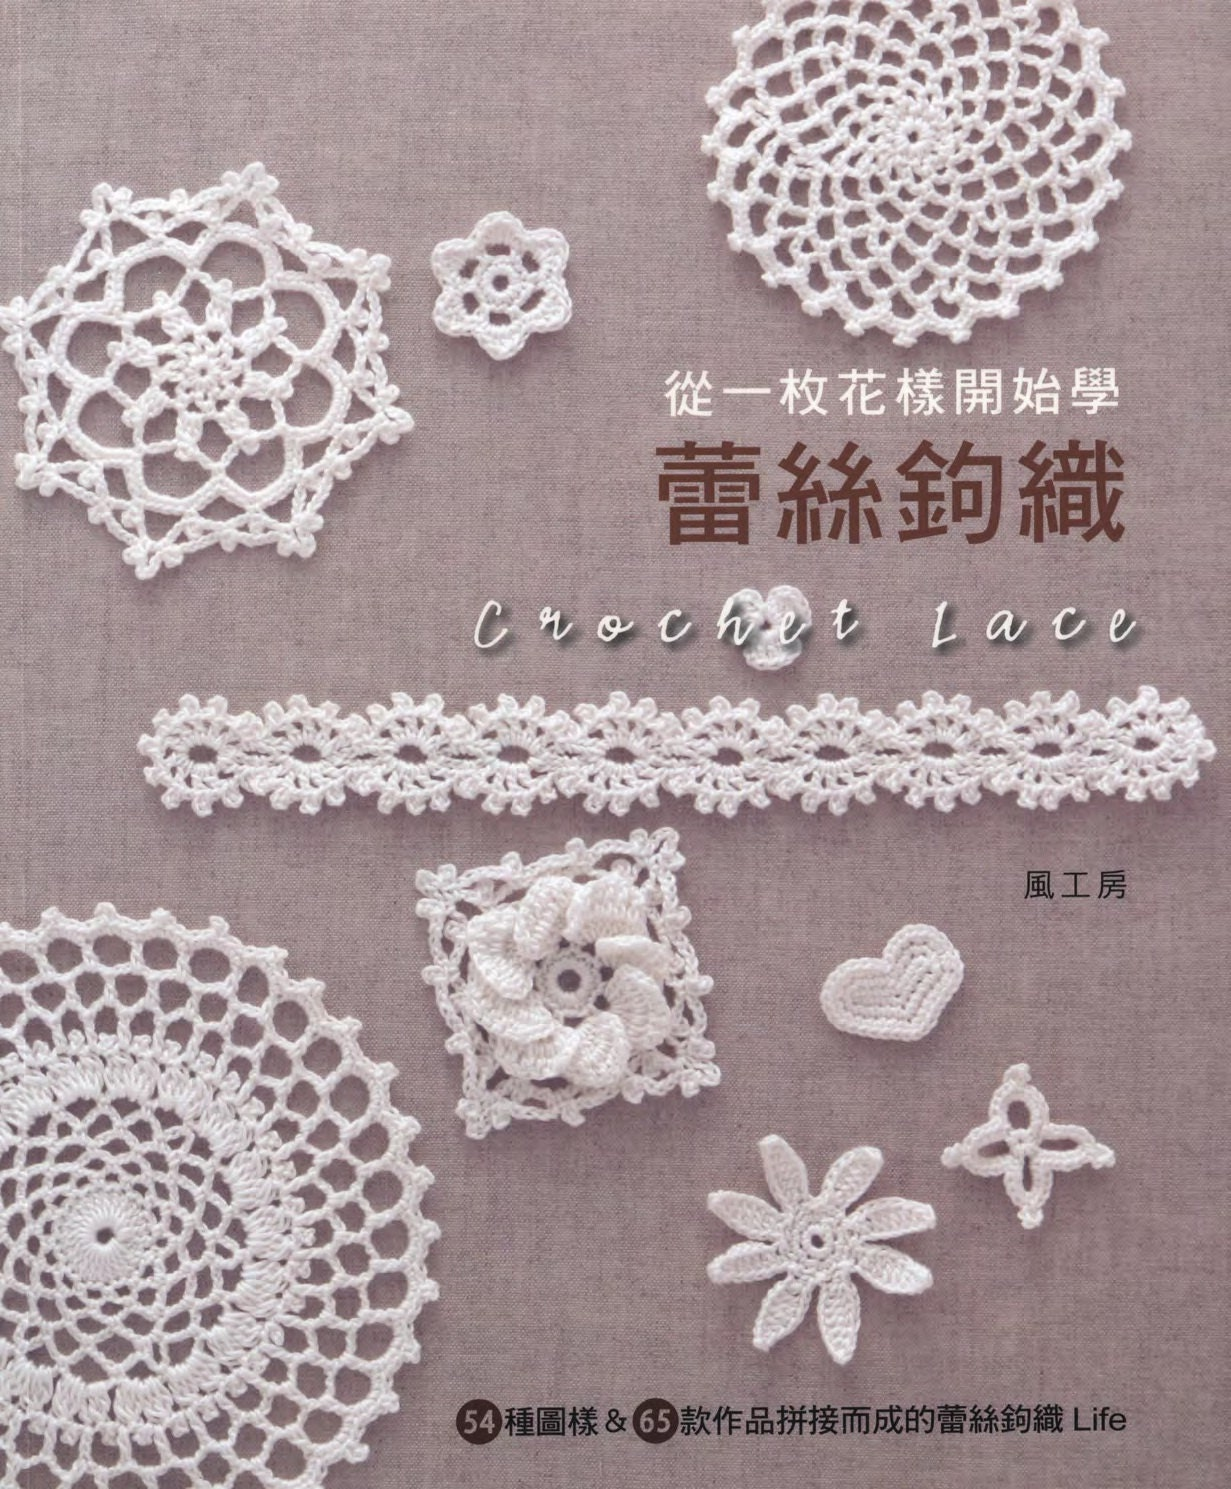 Crochet Lace Pattern For Edging : Crochet motif patterns crochet edging patterns crochet